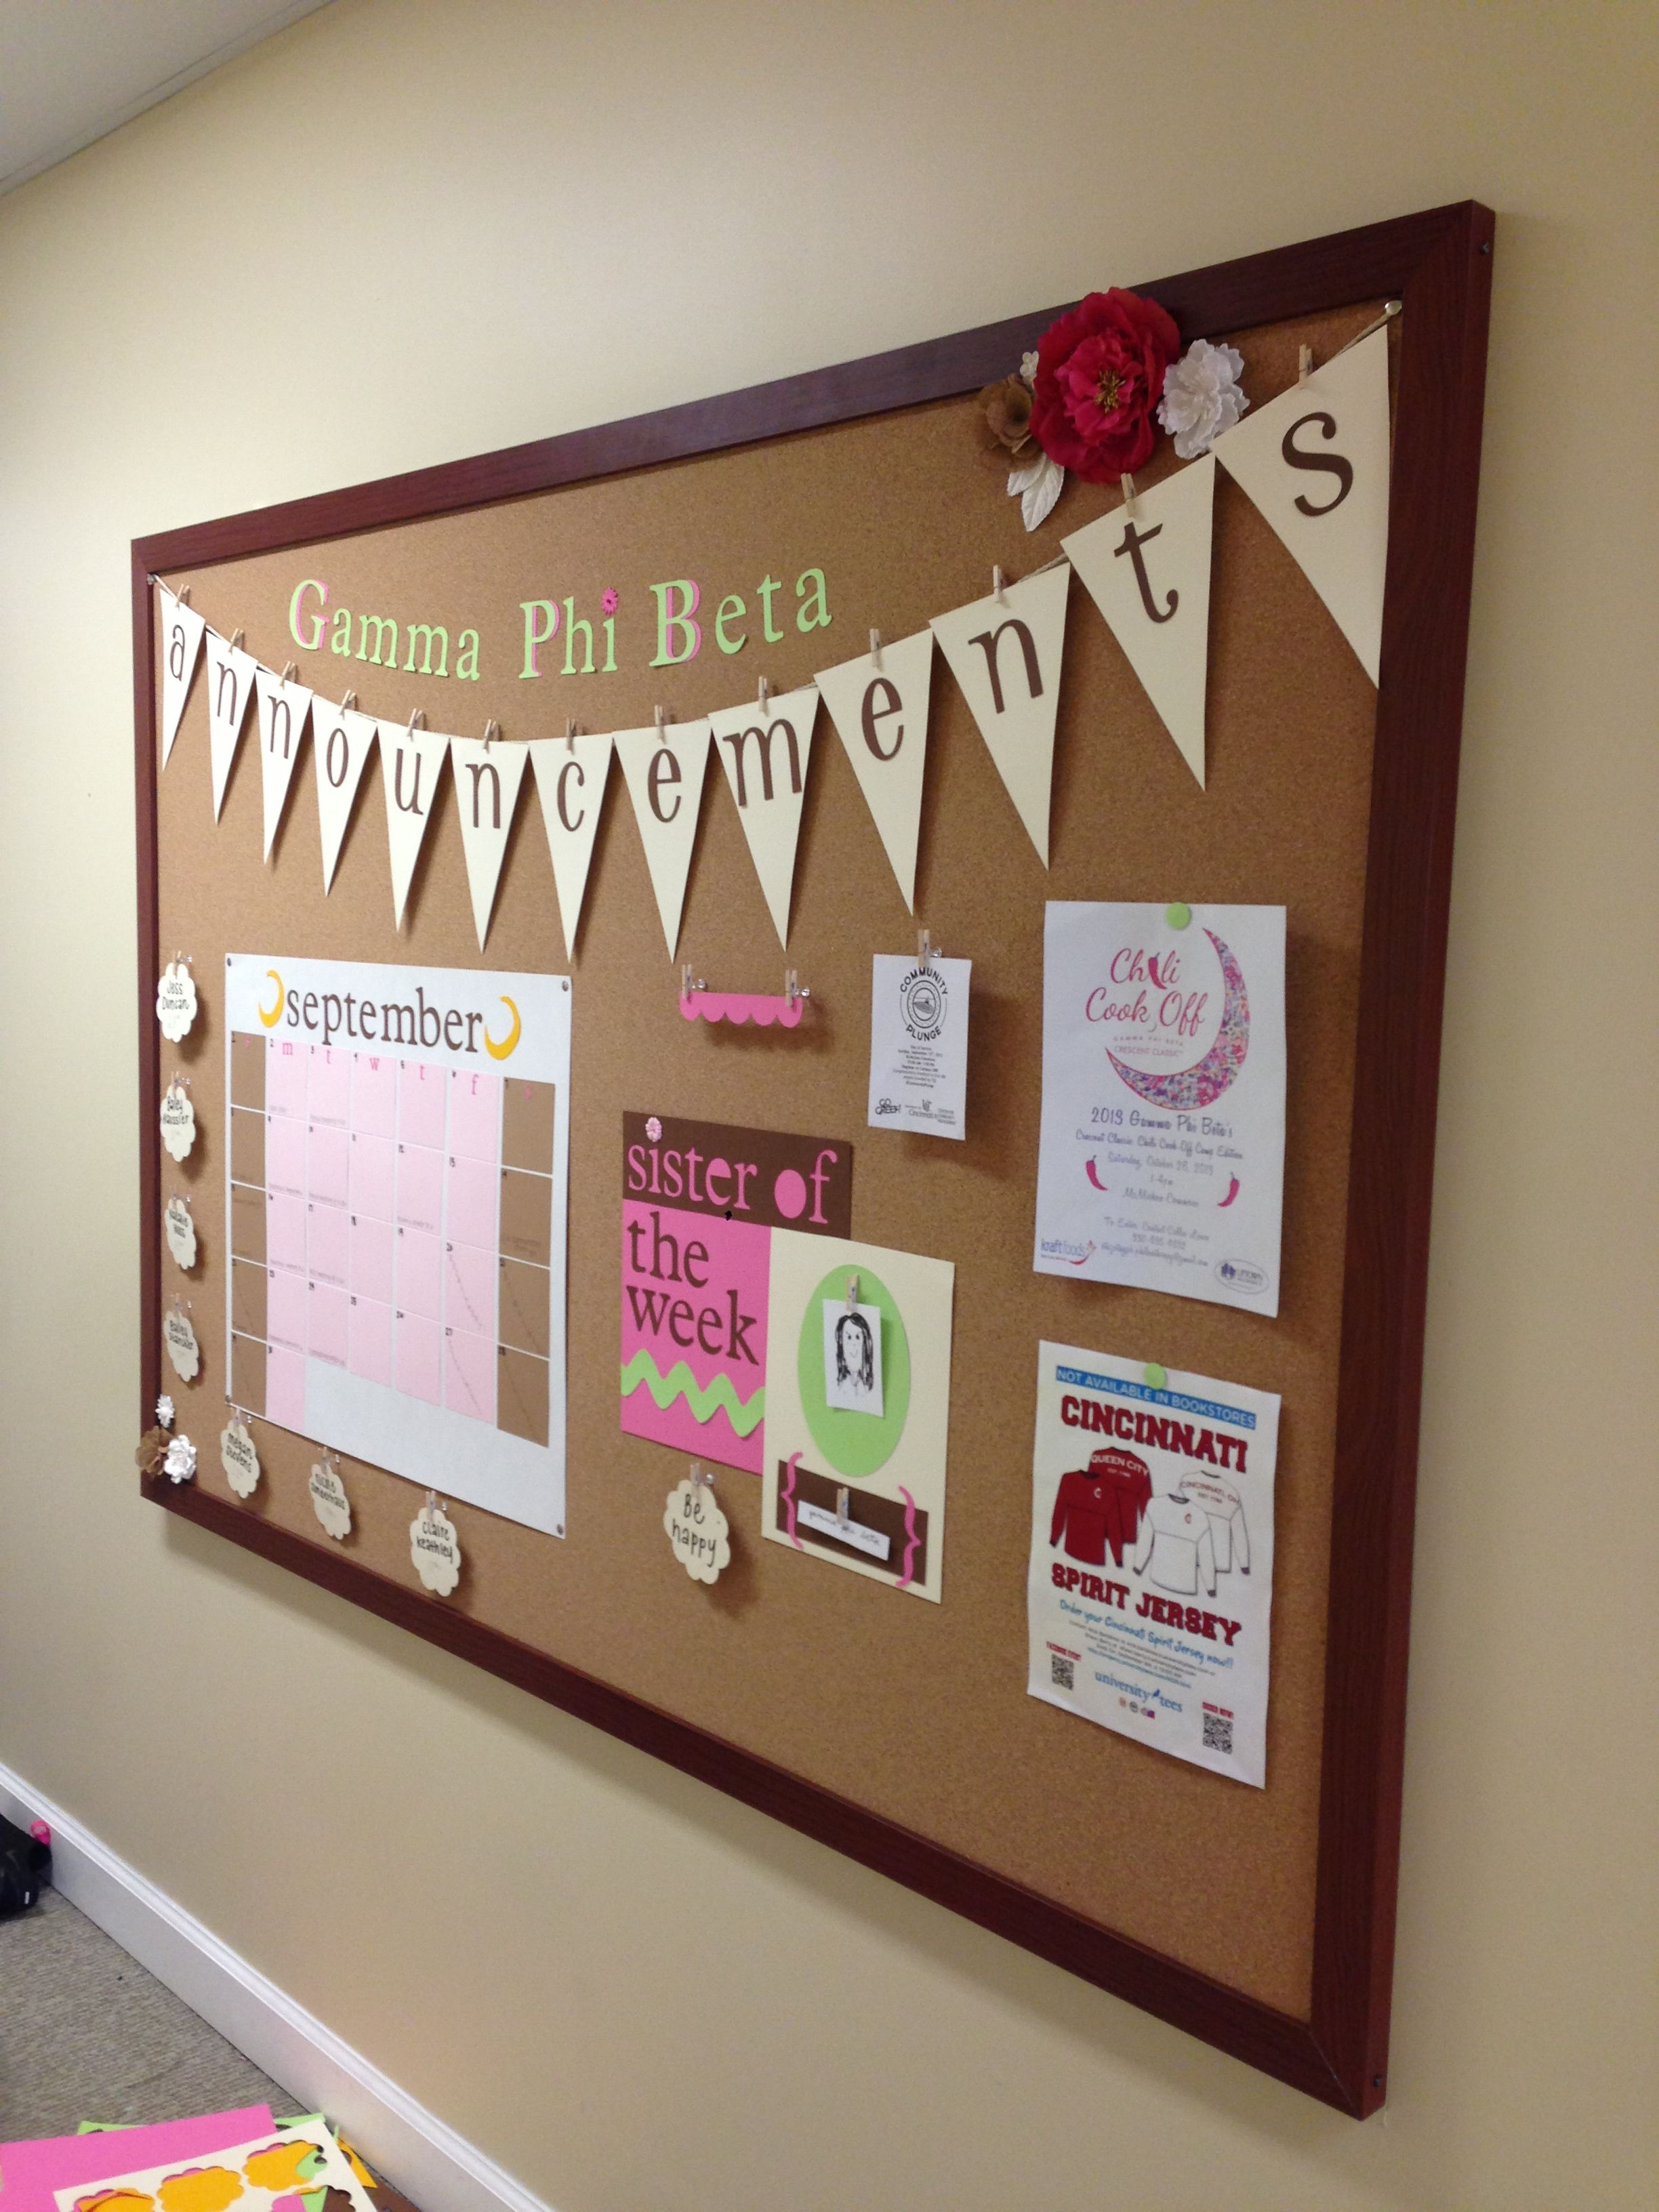 Chapter Announcement Board - Post In Meeting Room